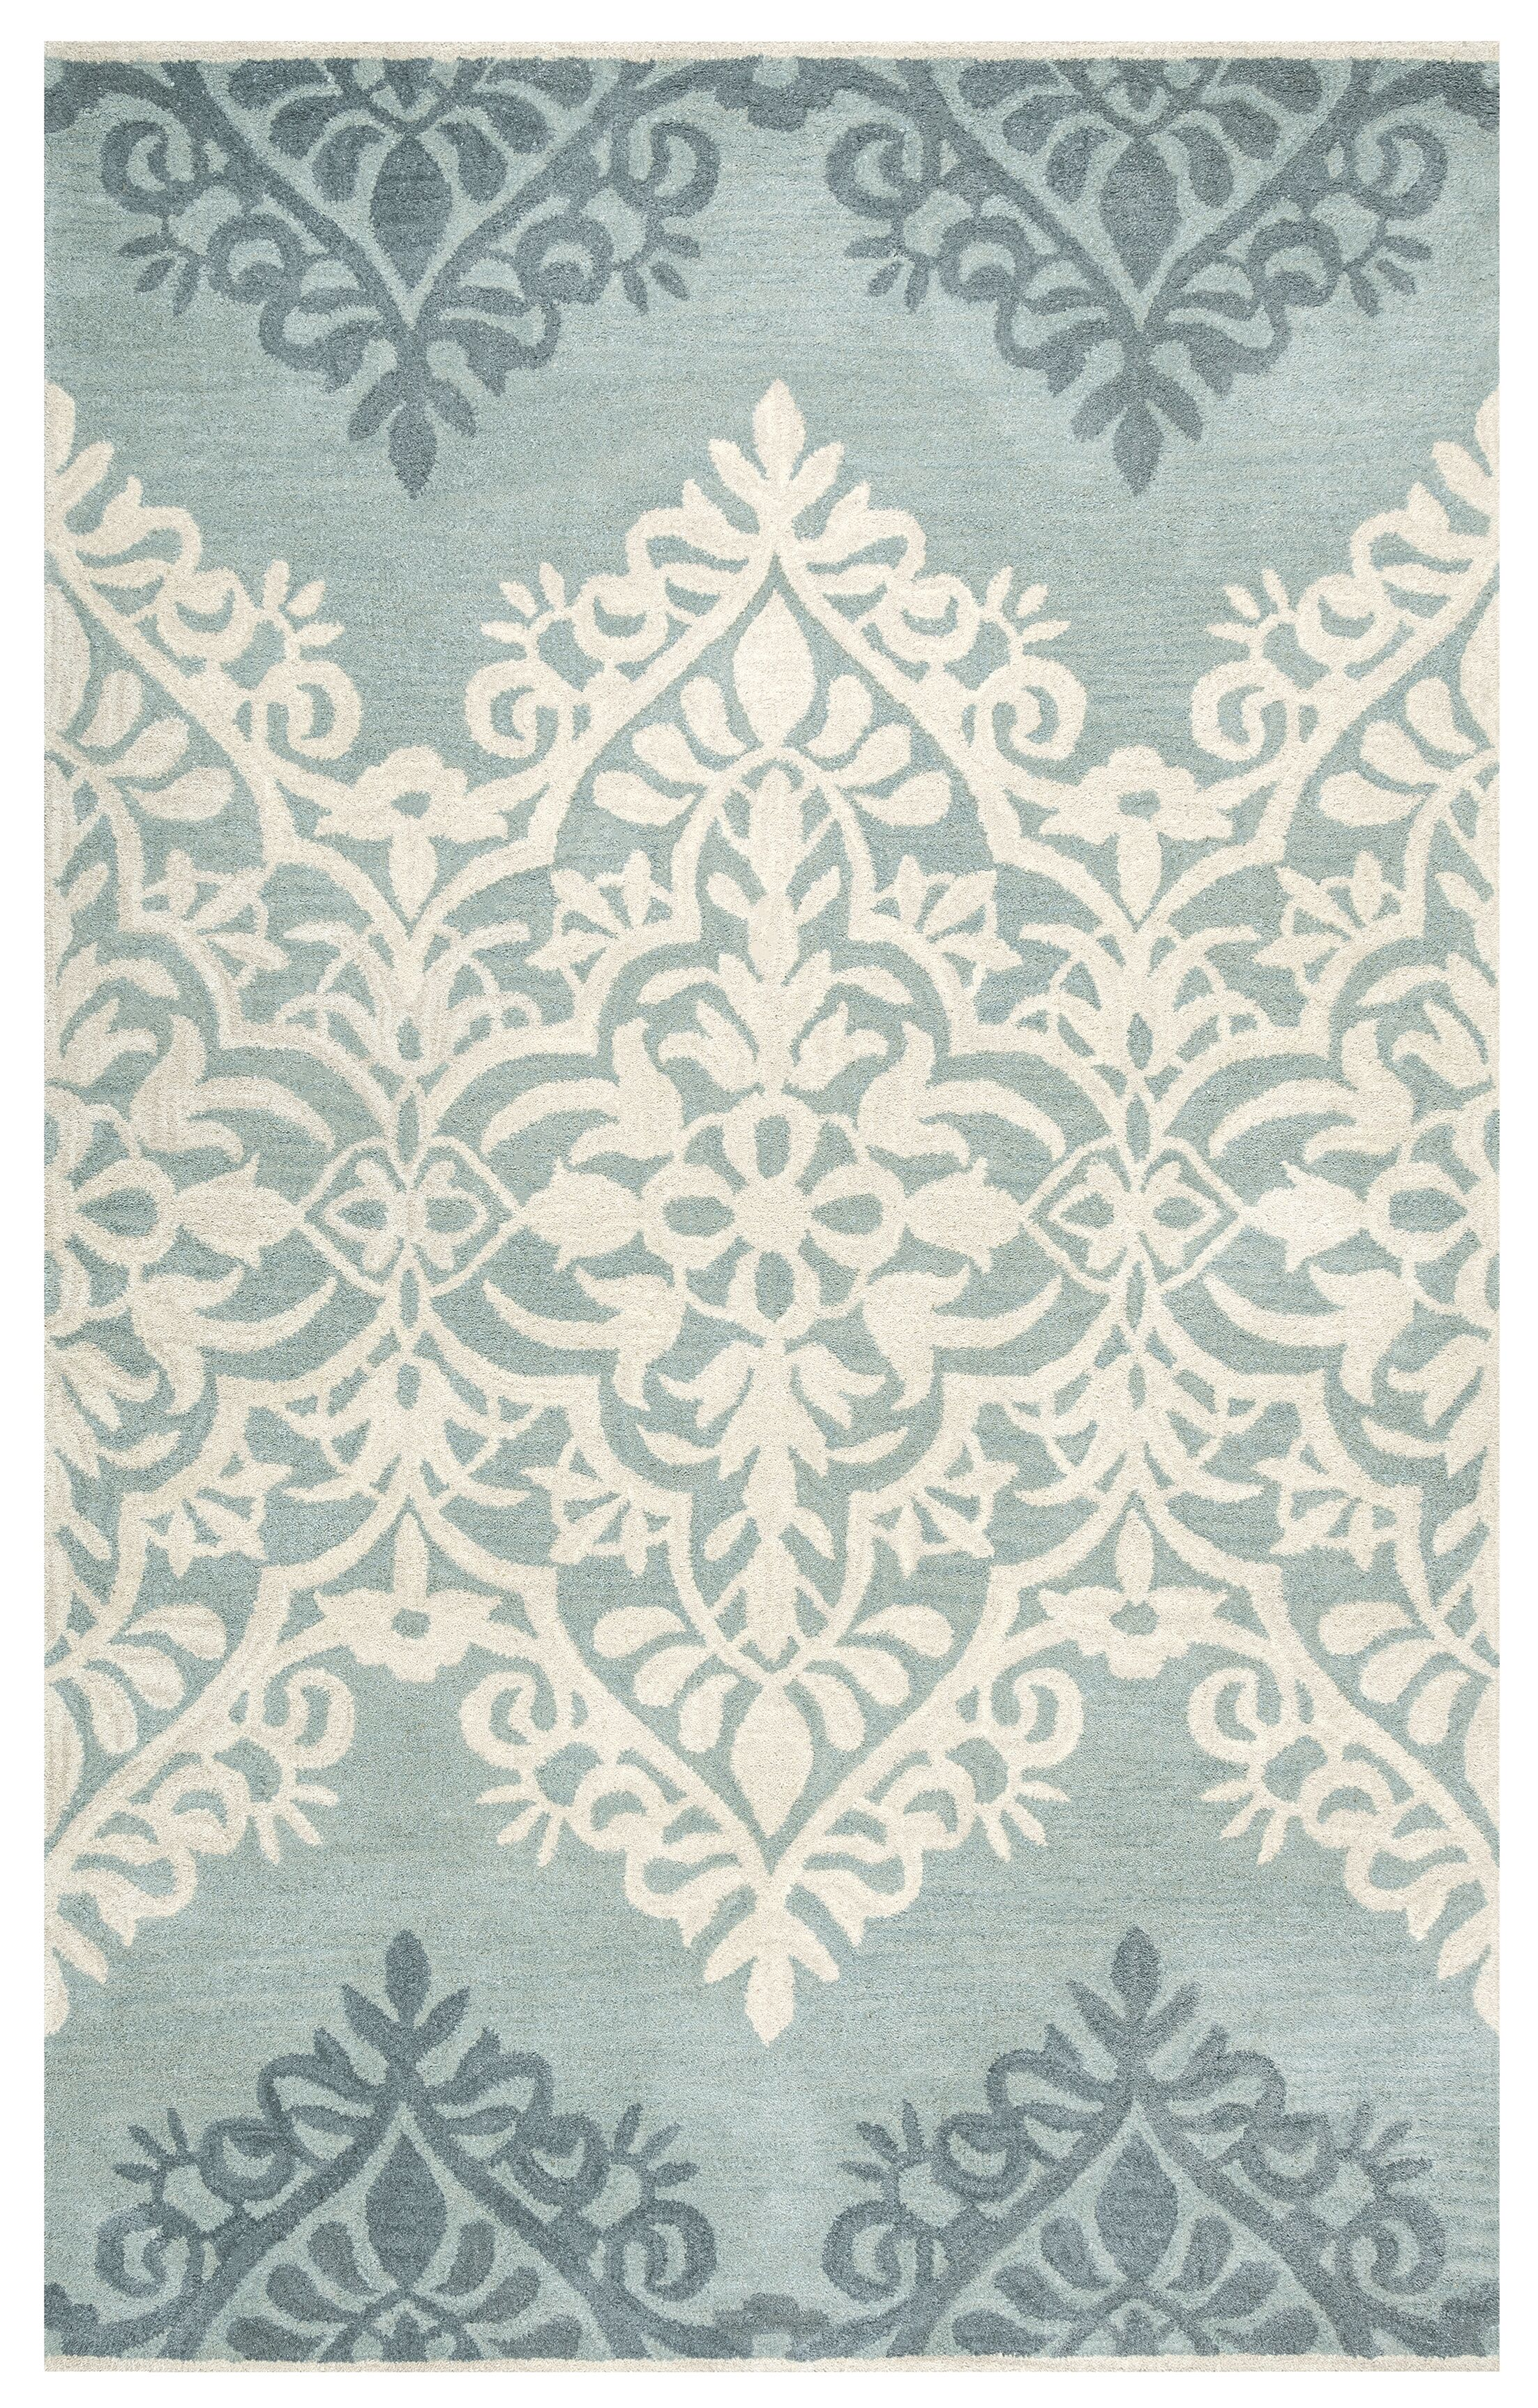 Southwell Hand-Tufted Blue/Green Area Rug Rug Size: Rectangle 9' x 12'